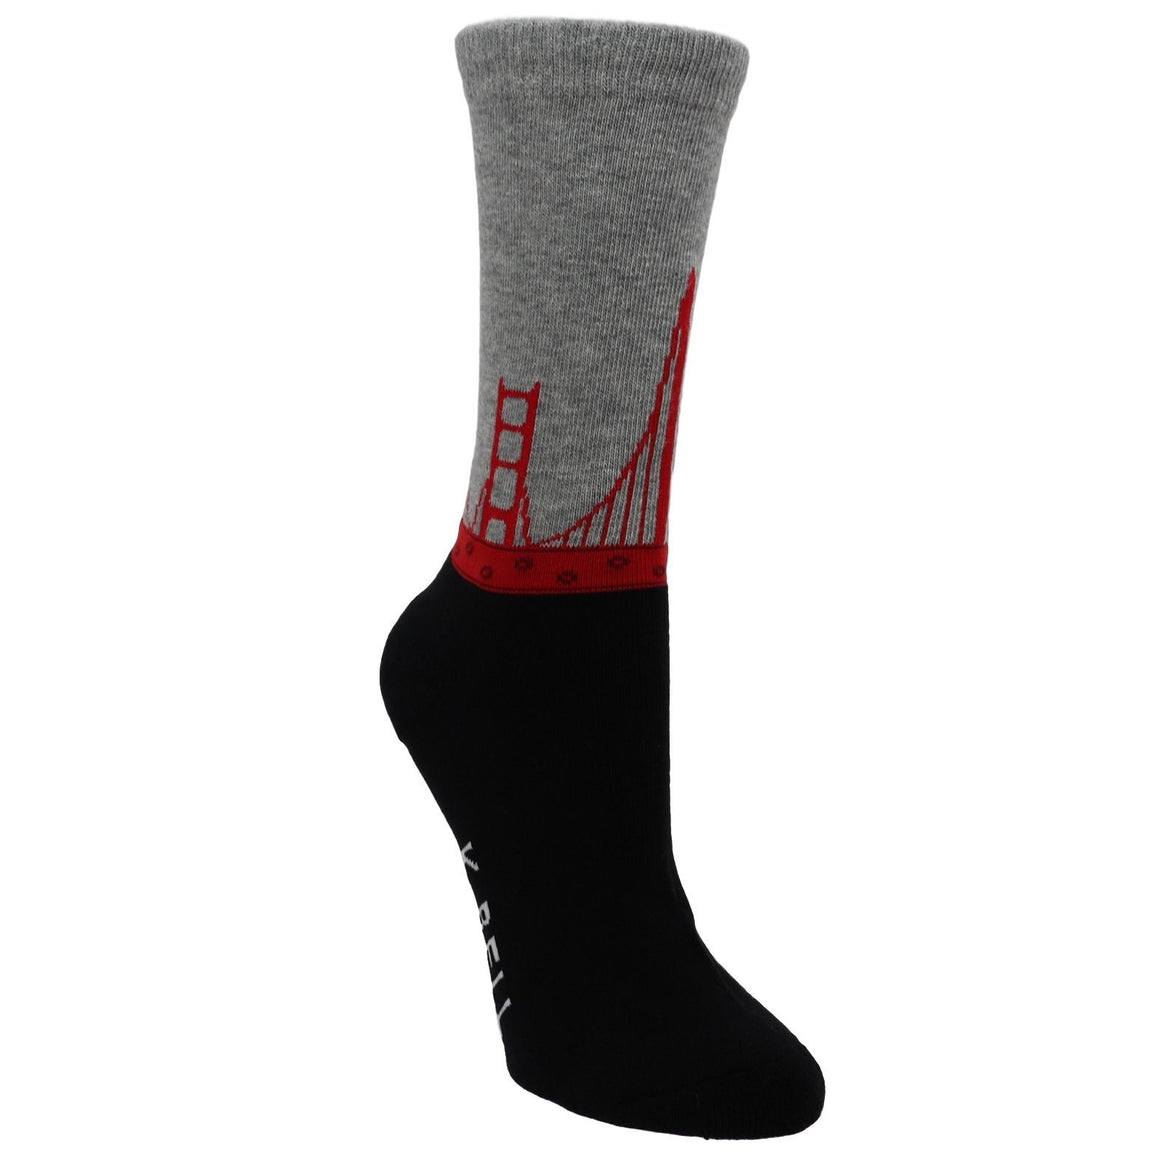 Golden Gate Bridge Women's Socks - Made in America by K.Bell - The Sock Spot